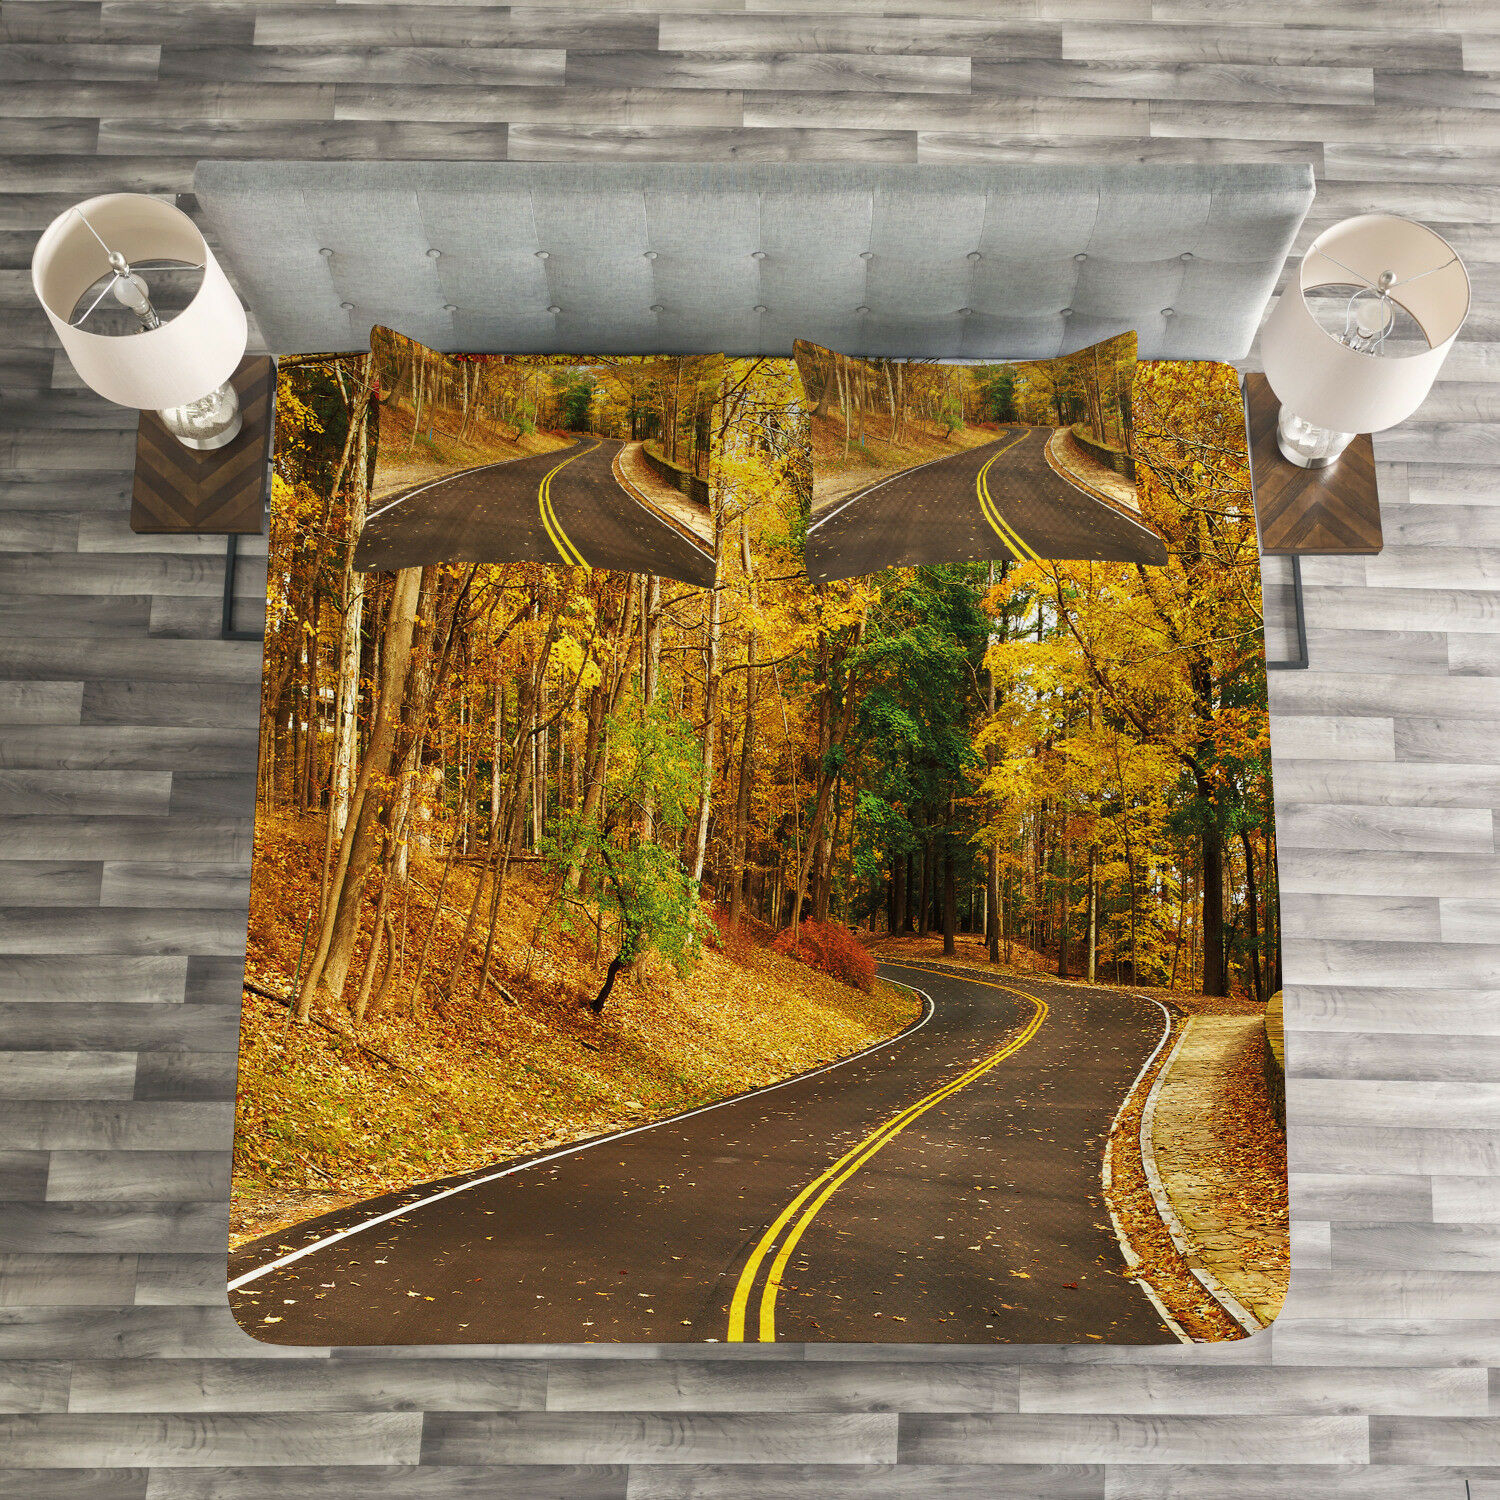 Fall Quilted Bedspread & Pillow Shams Set, Autumn Scenery Roadway Print